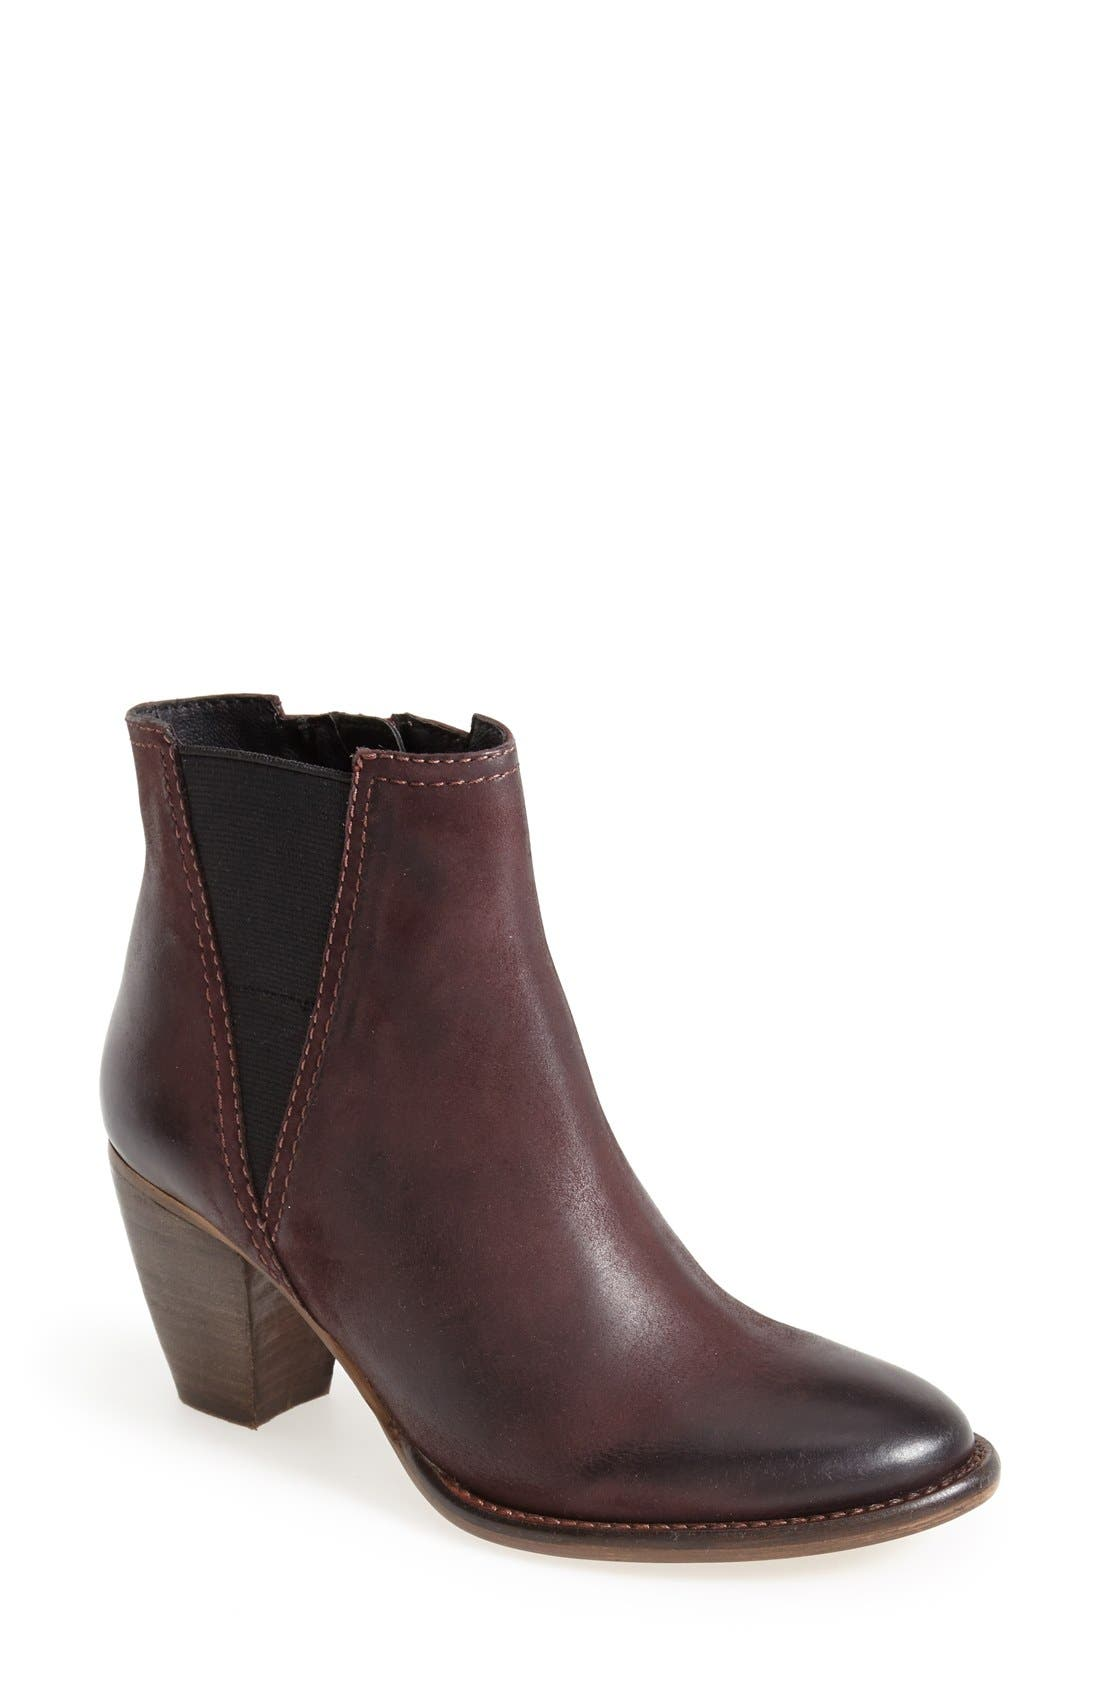 Alternate Image 1 Selected - Steve Madden 'Shearly' Leather Bootie (Women)